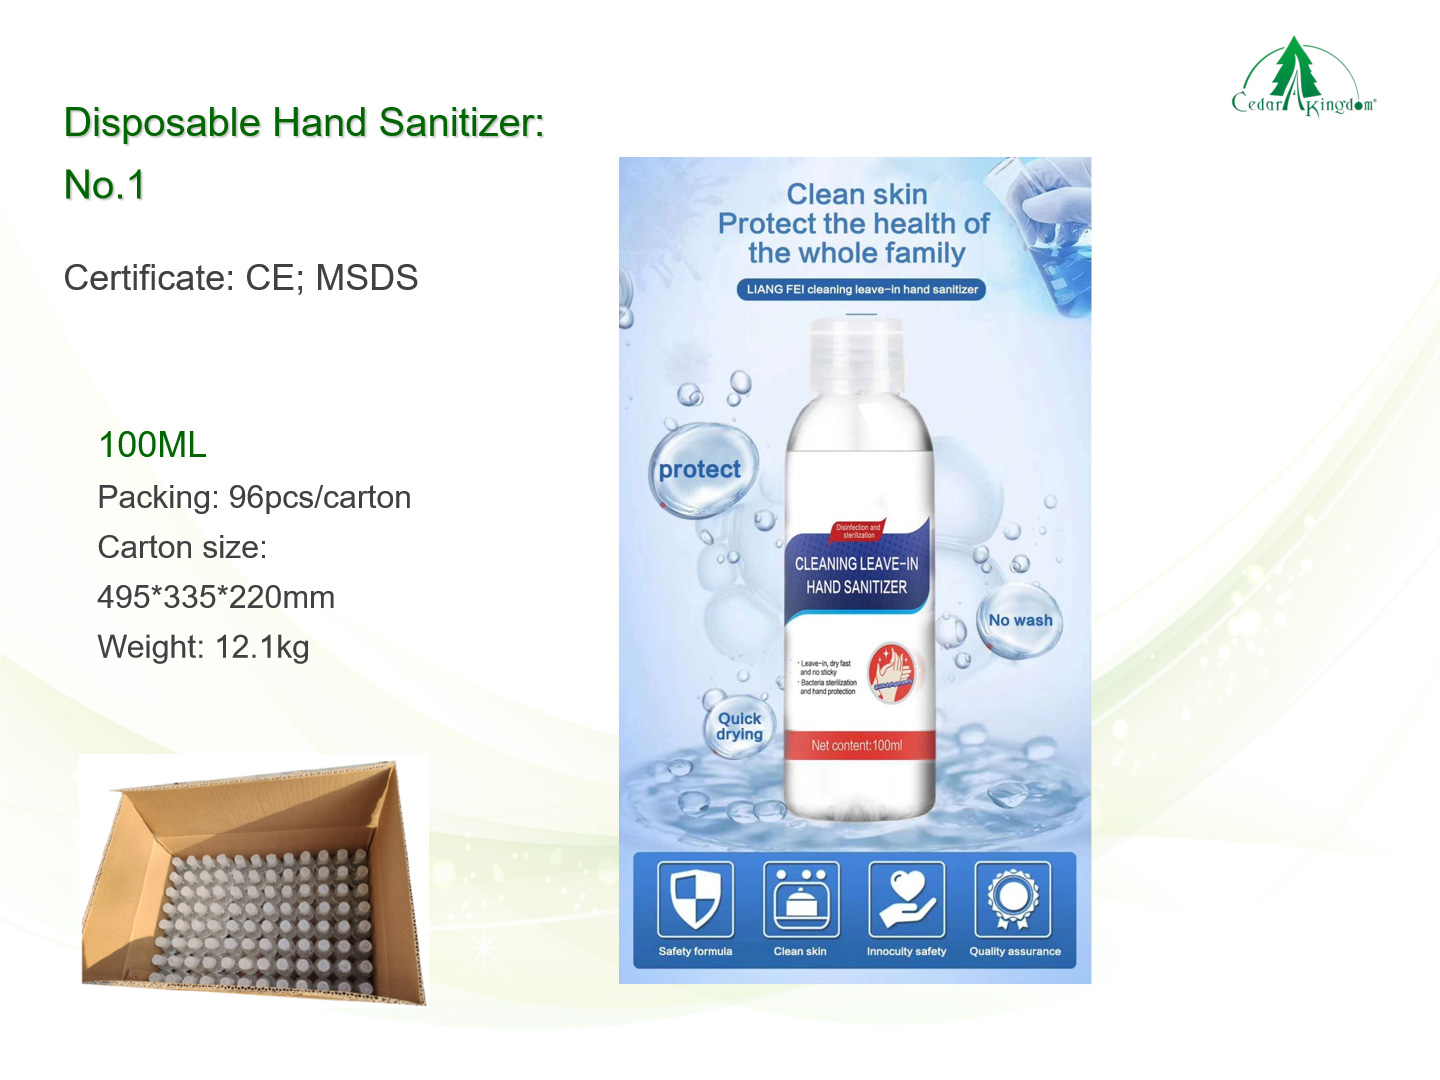 Disposable-Hand-Sanitizer-2